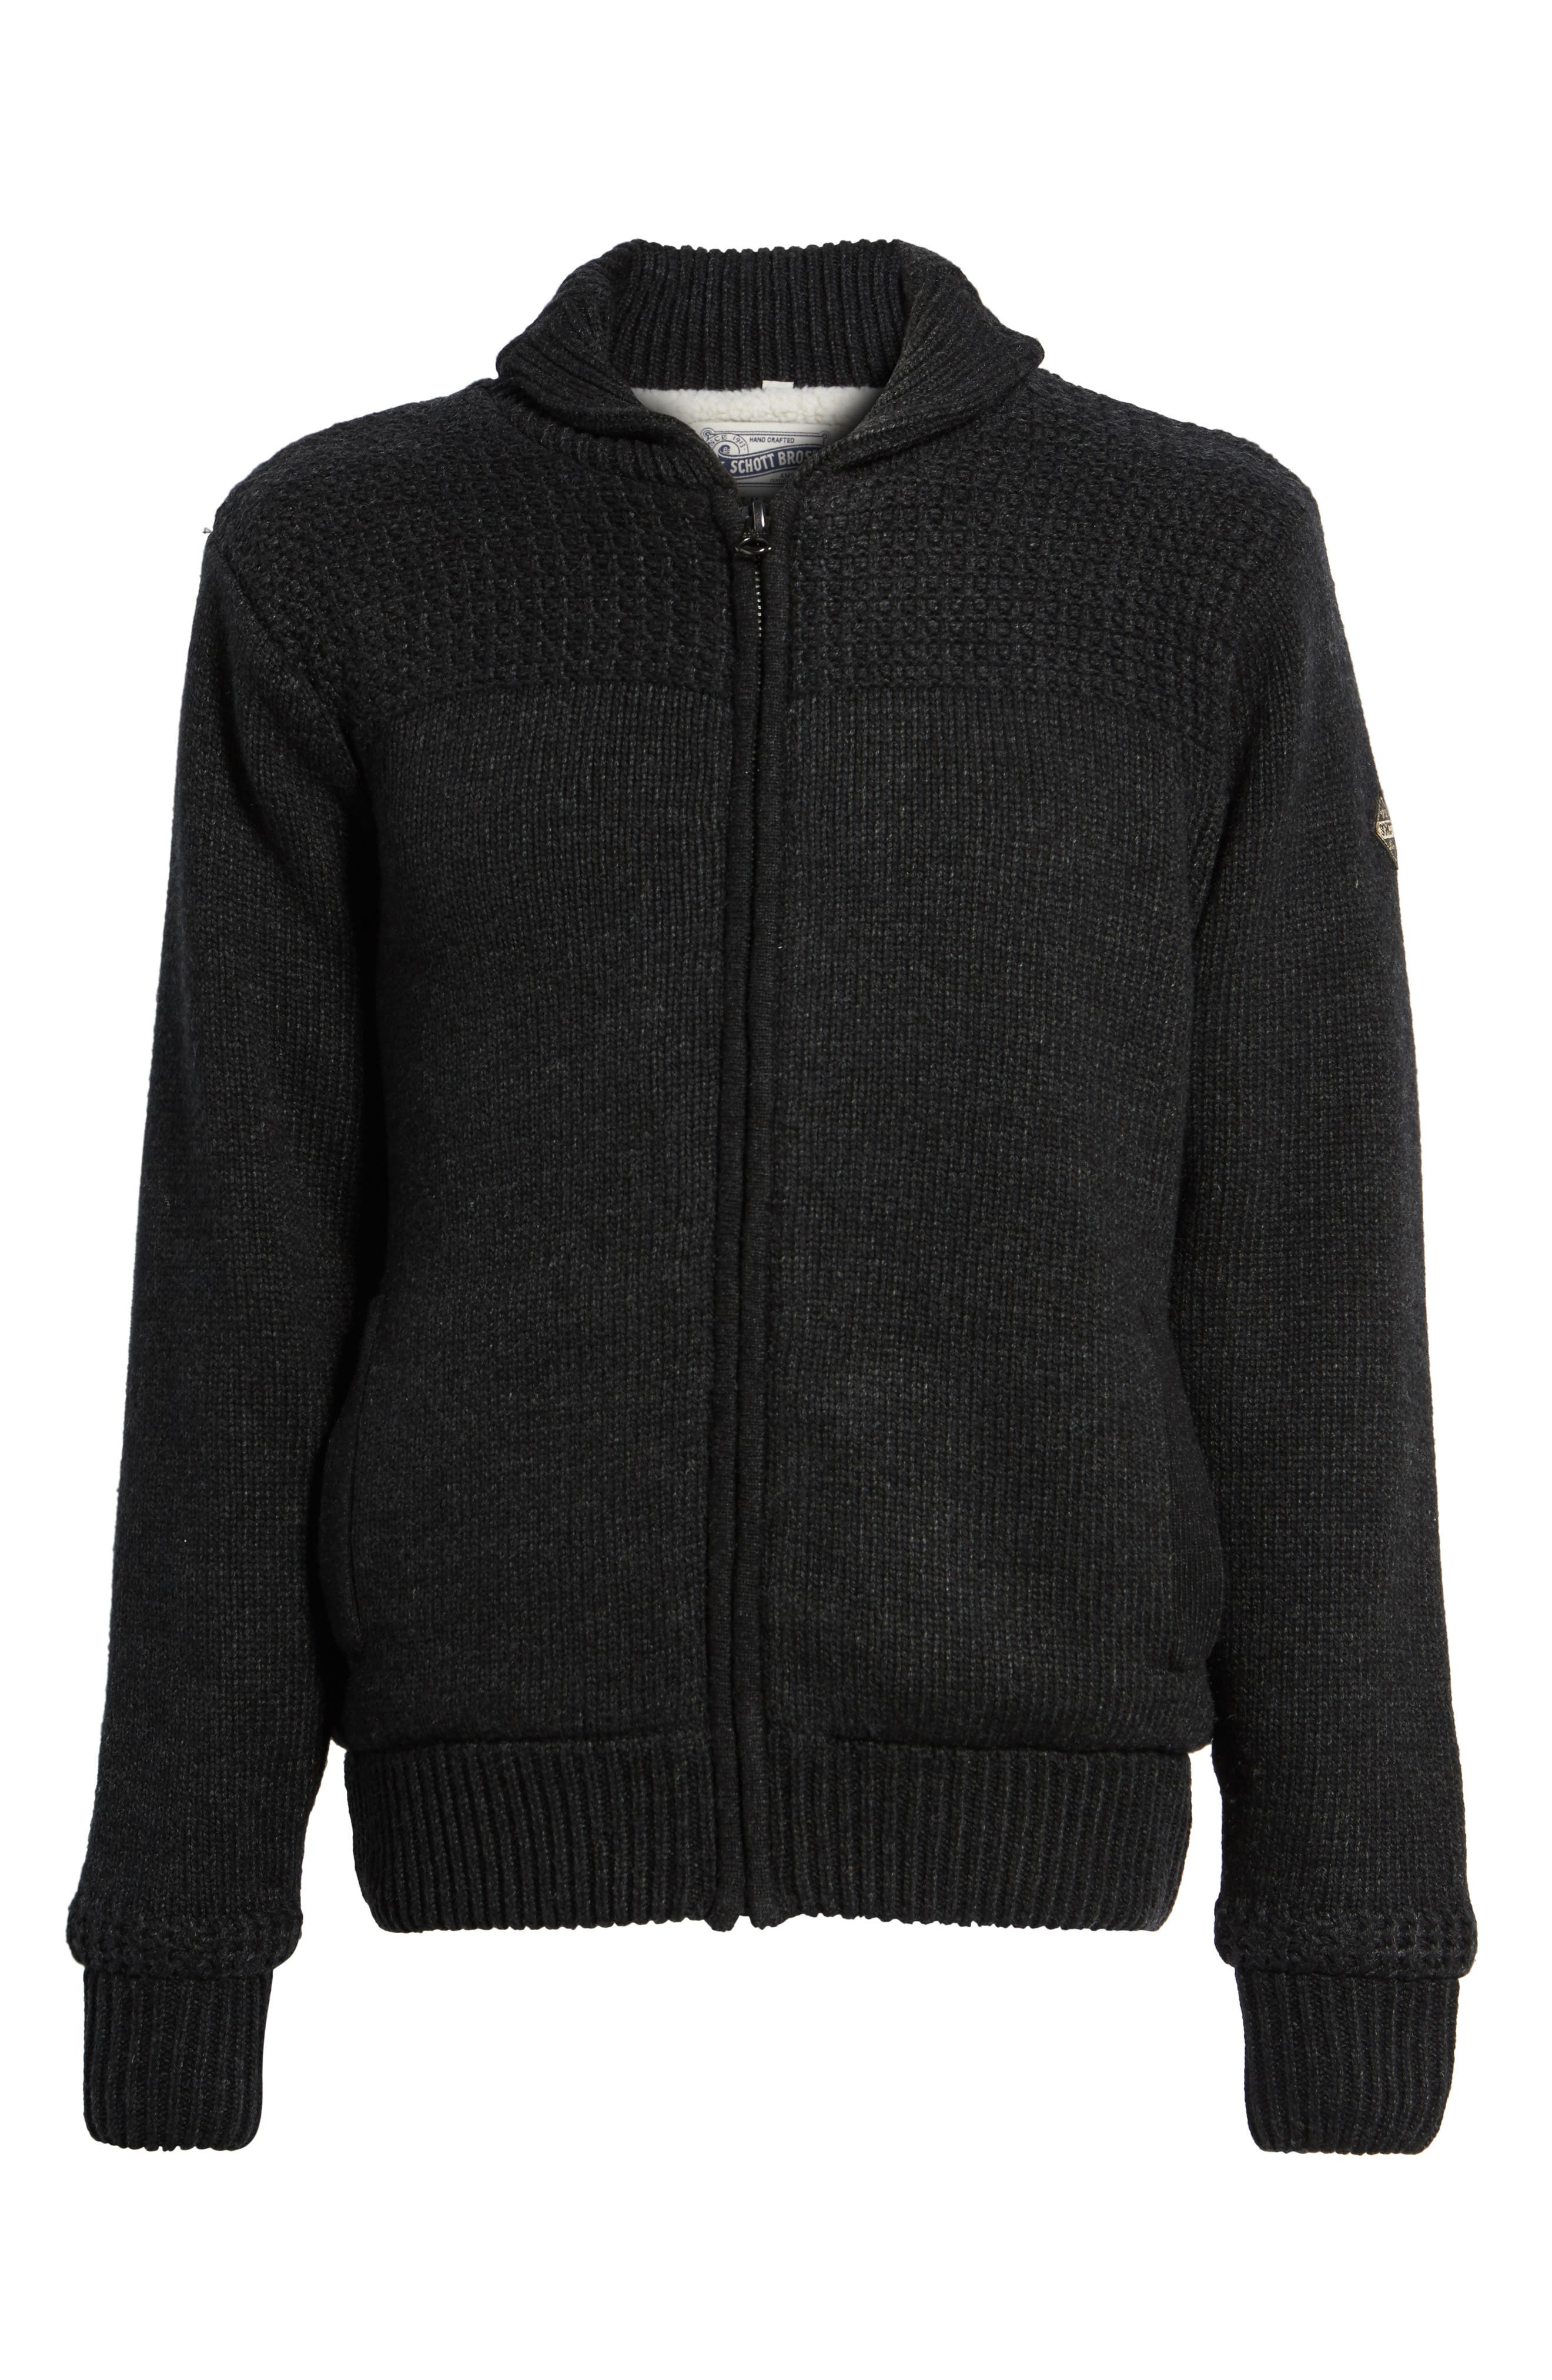 Lined Wool Zip Sweater,                             Alternate thumbnail 7, color,                             BLACK